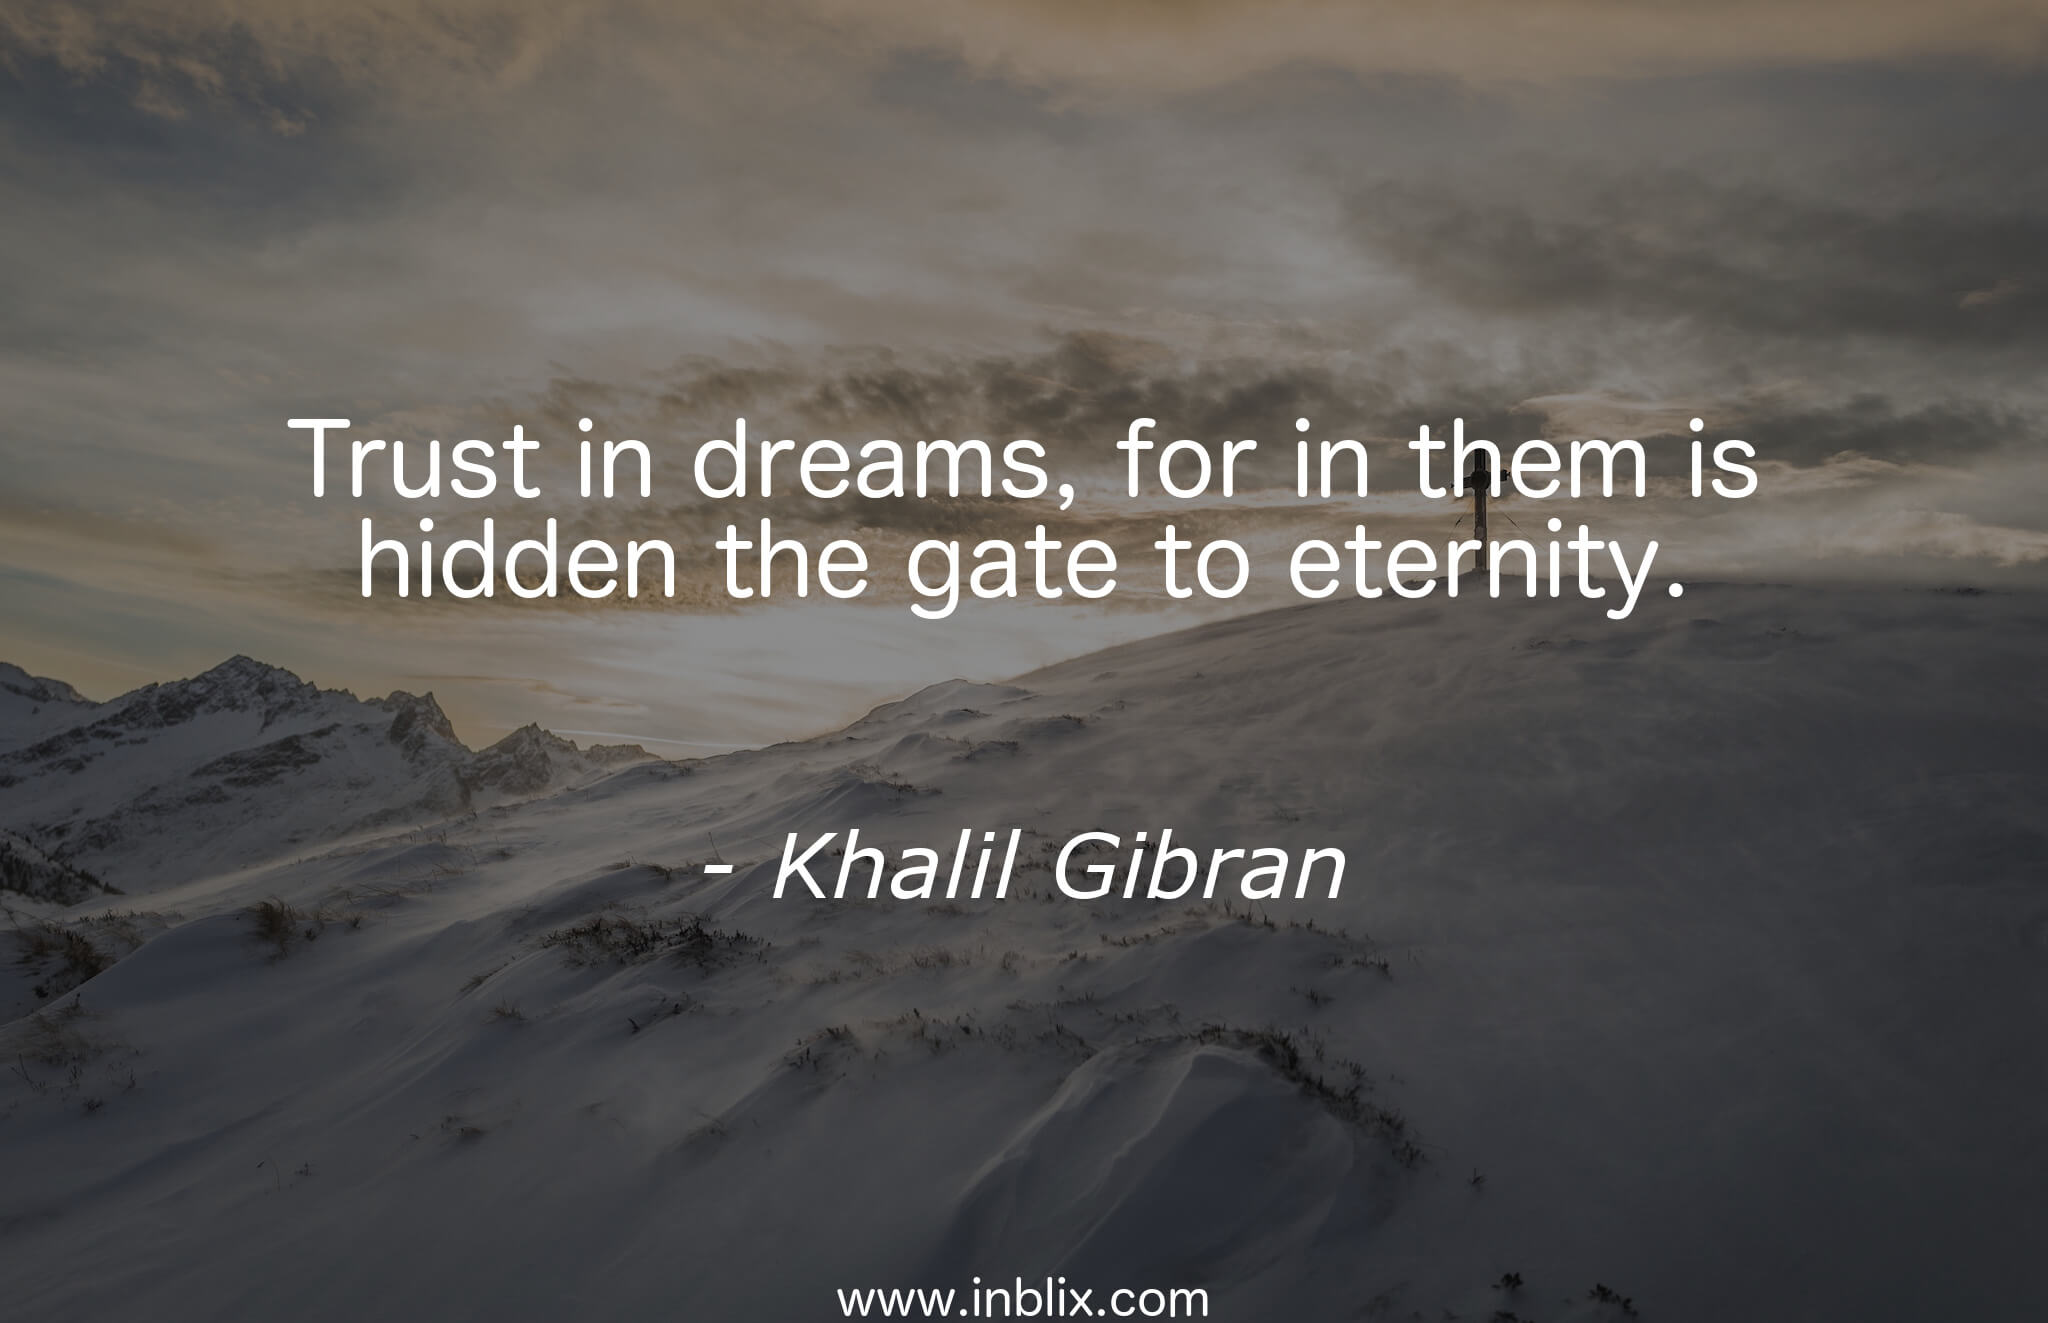 Quotes Gate Trust In Dreams For In Them Ikhalil Gibran  Inblix